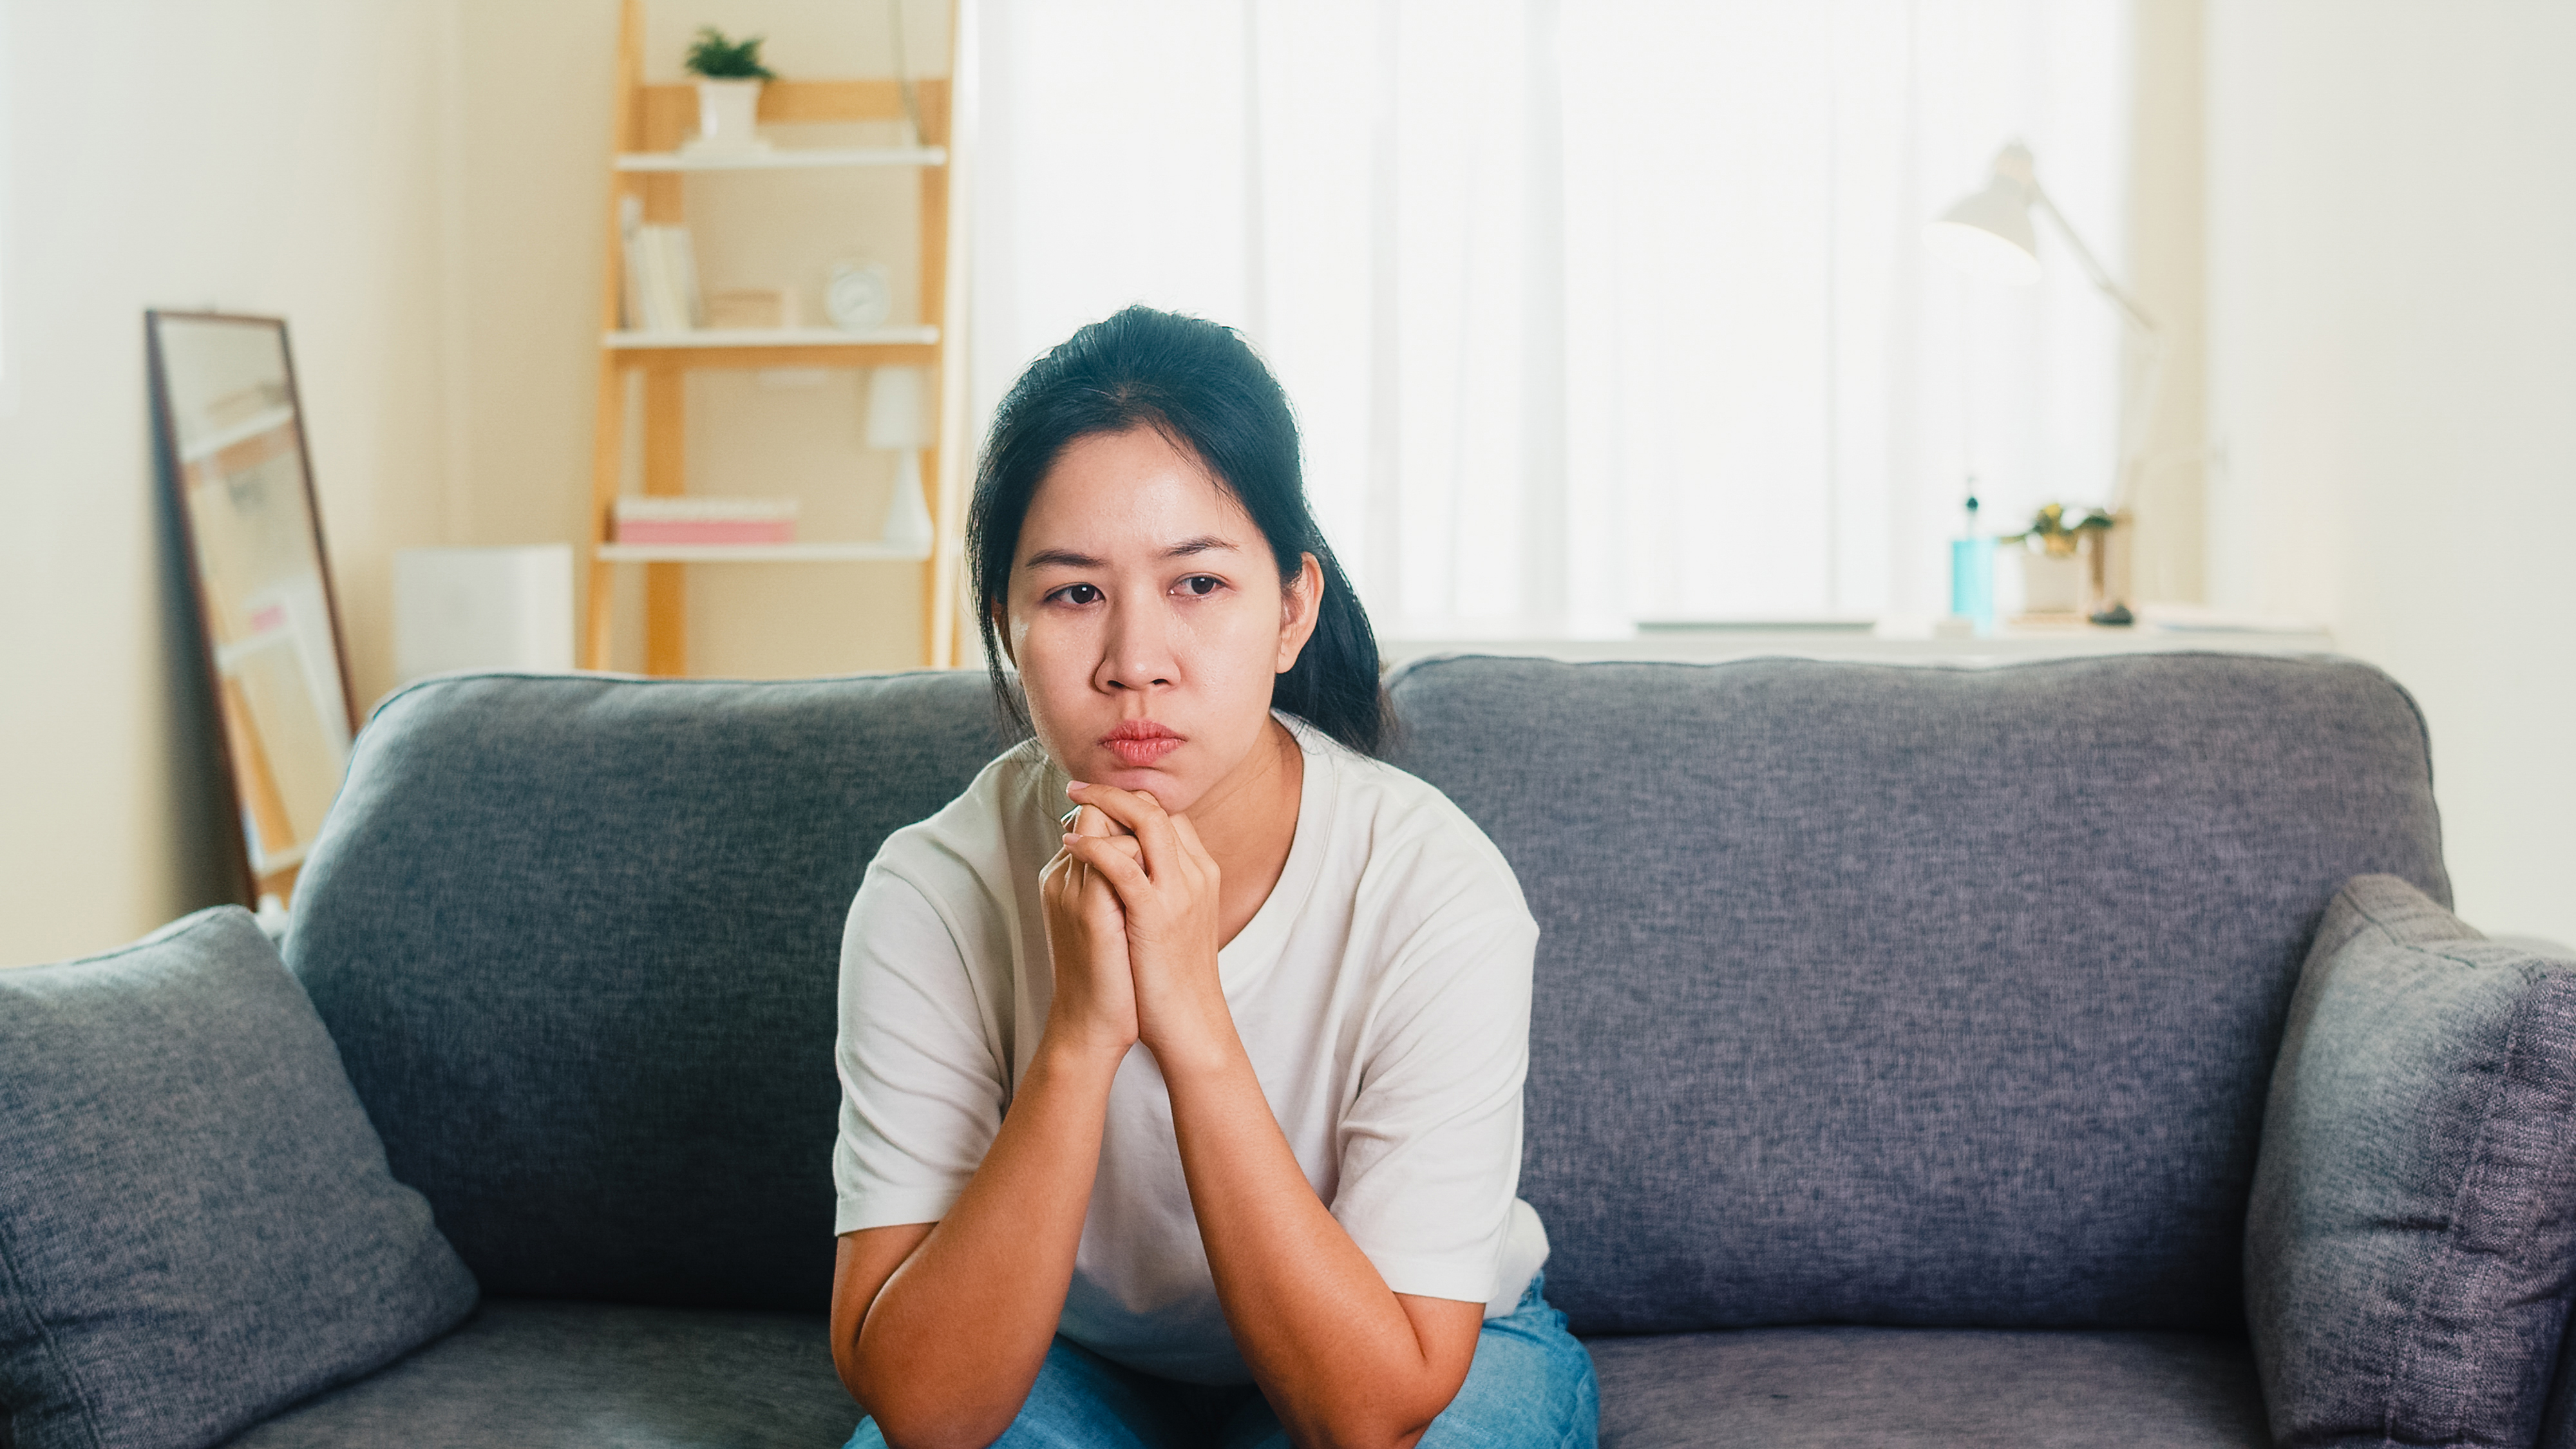 Five Practical and Proactive Tips to Help Reduce Anxiety